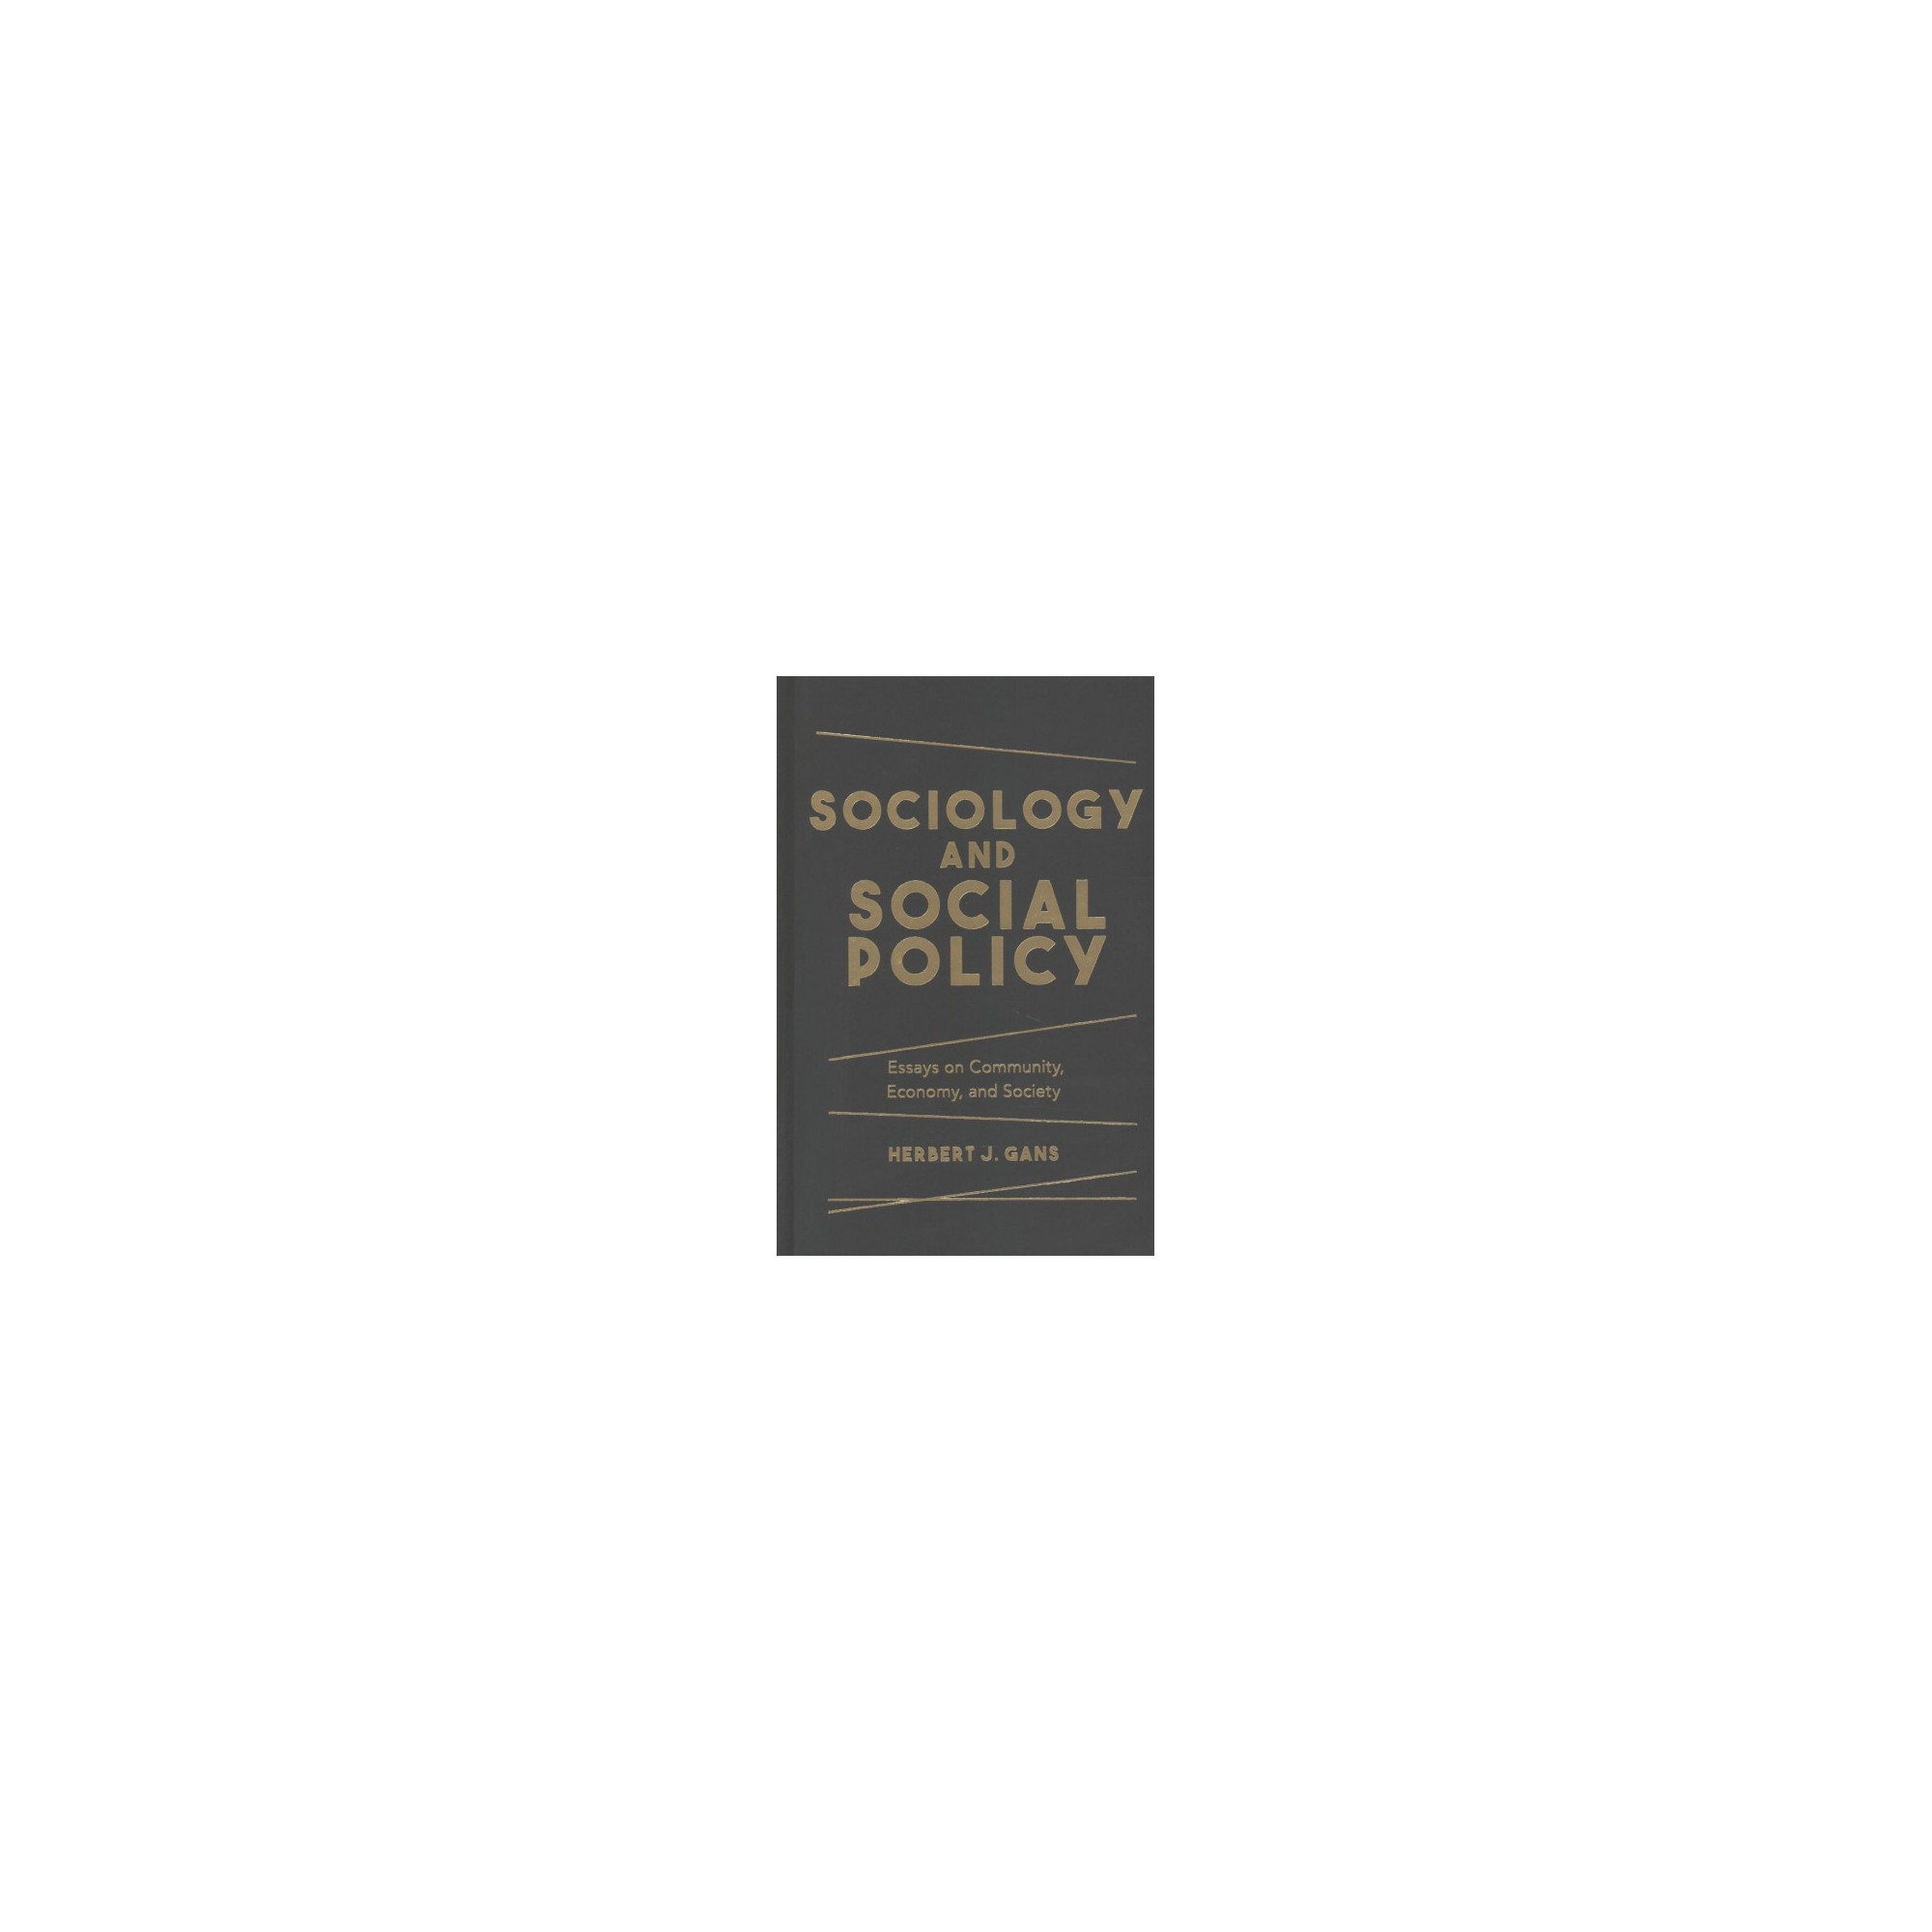 sociology and social policy essays on community economy and  sociology and social policy essays on community economy and society hardcover